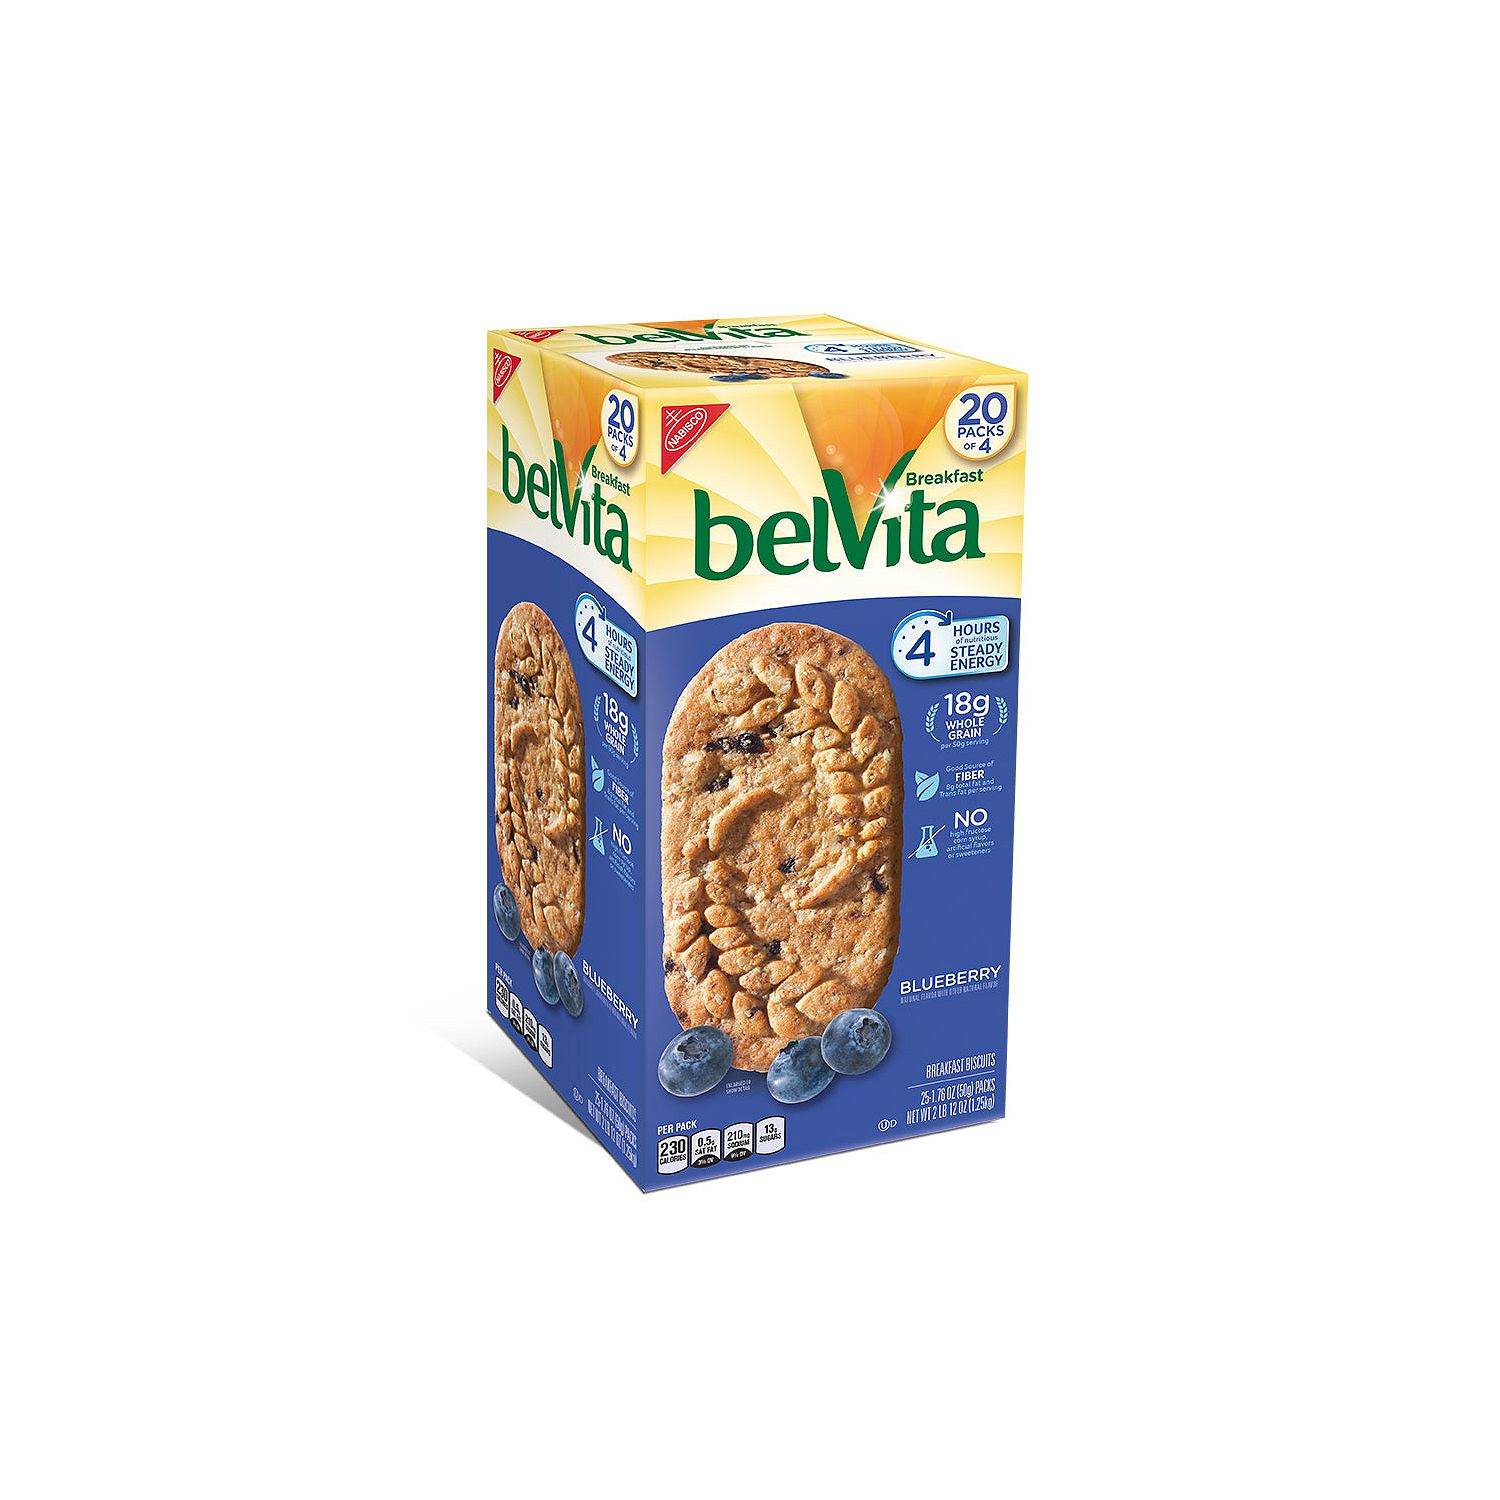 belVita Blueberry Breakfast Biscuits (20 ct.)